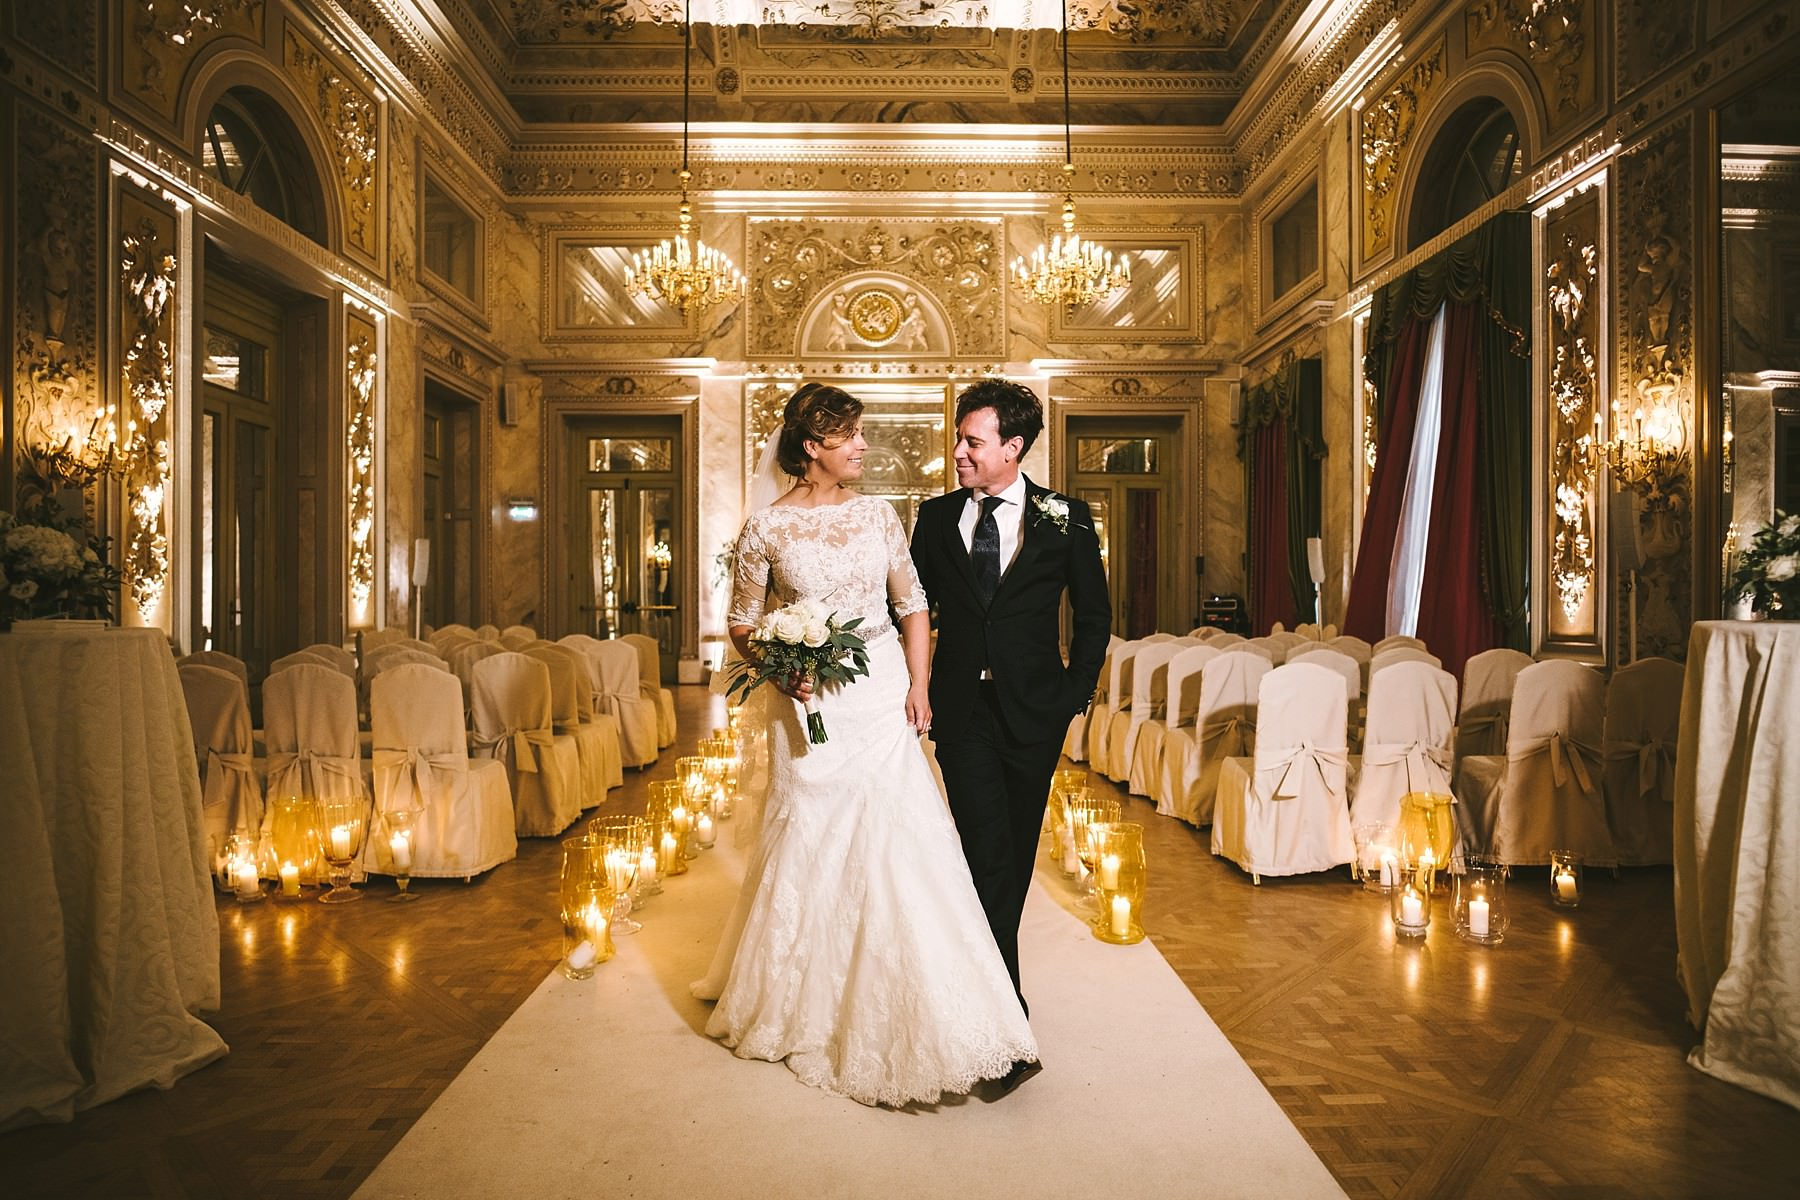 Bride and groom wedding photo into luxury hotel St. Regis Florence at Sala delle Feste Ballroom